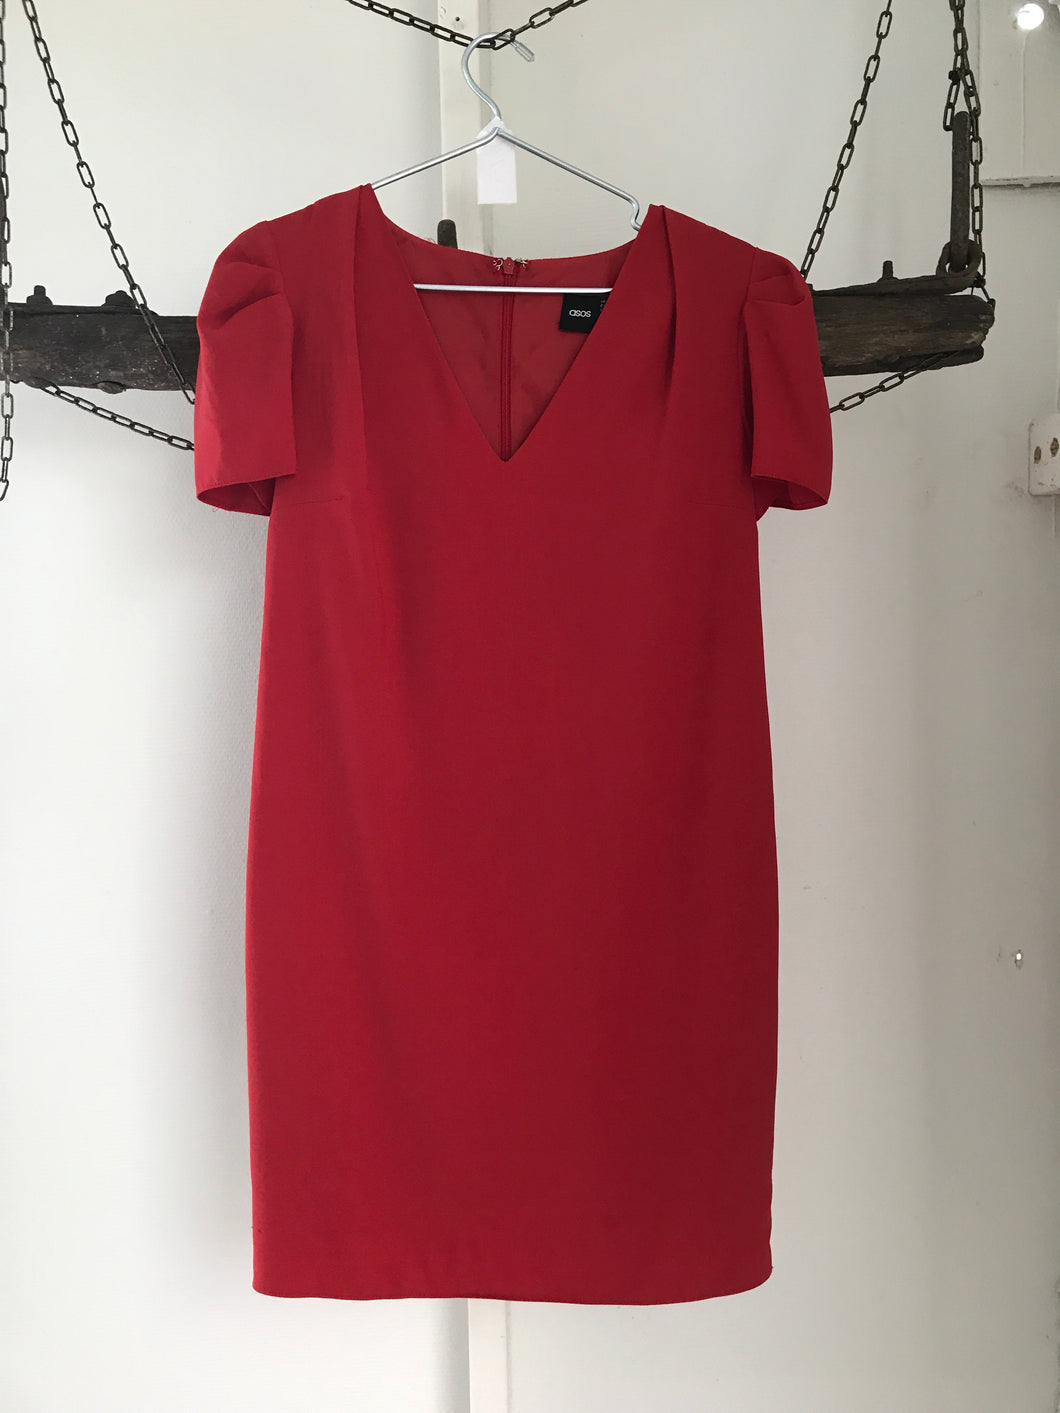 ASOS Red Straight Dress Size 8